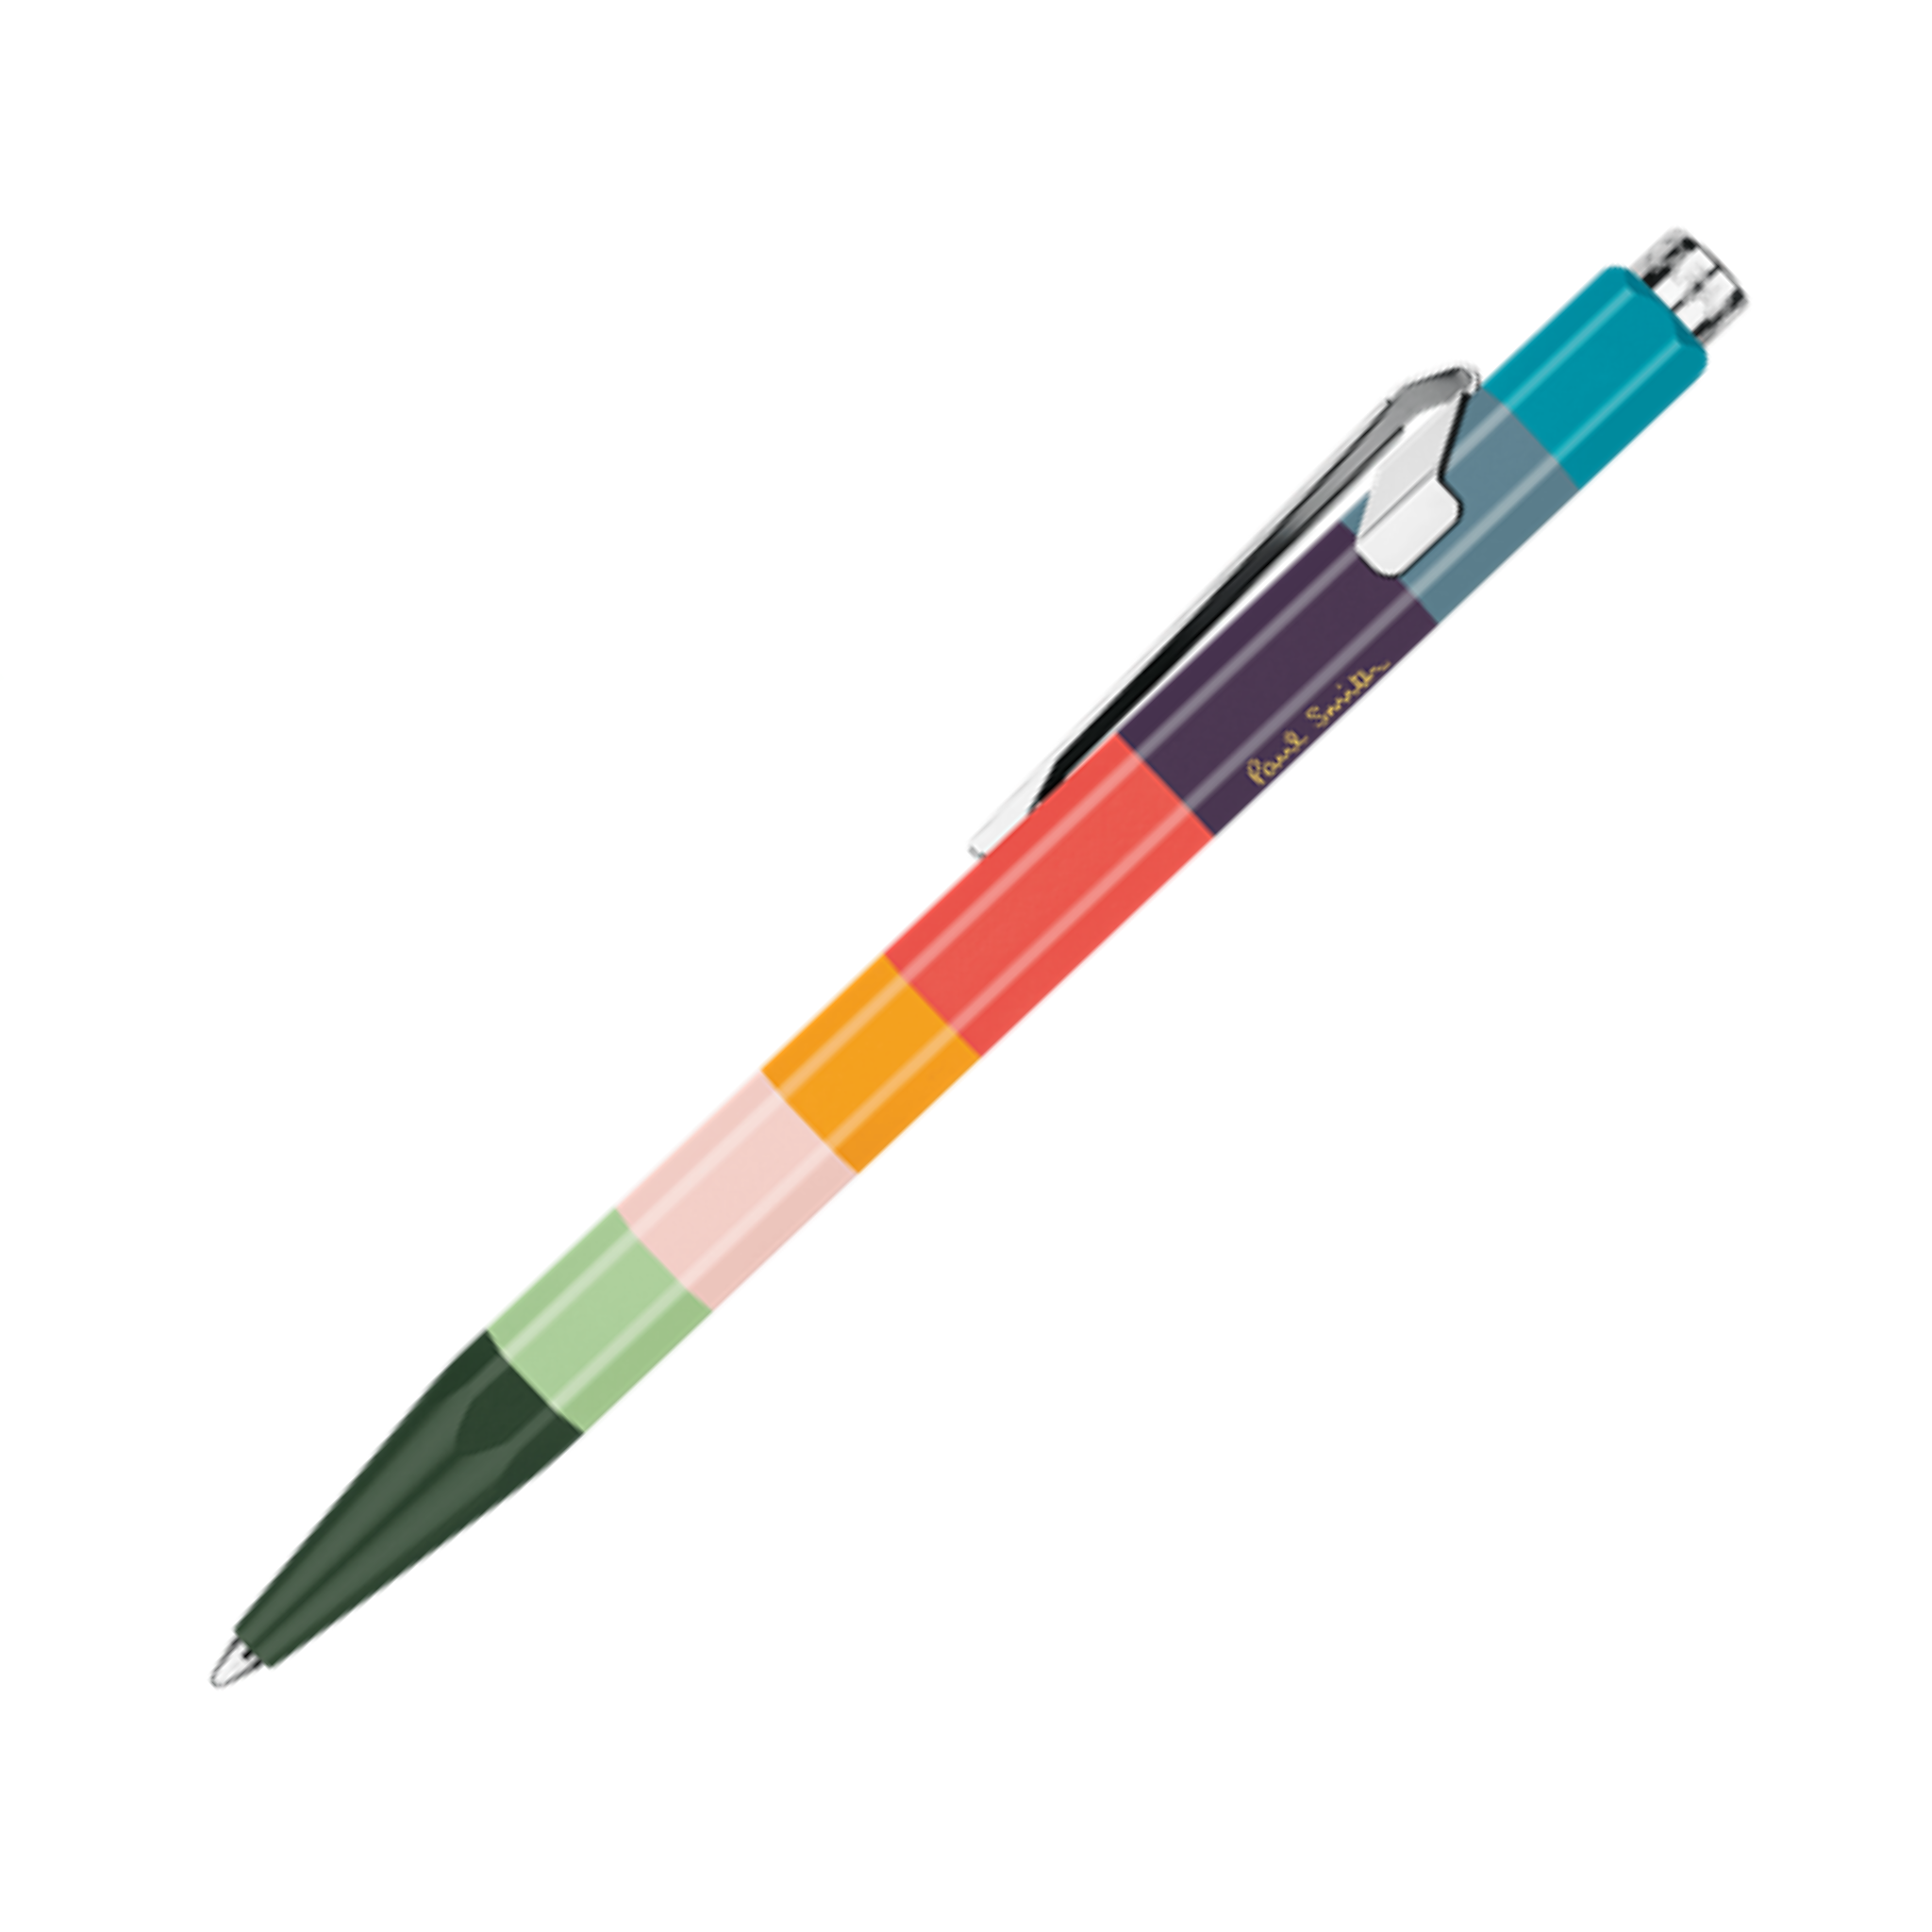 Paul Smith 849 Ballpoint - Racing Green